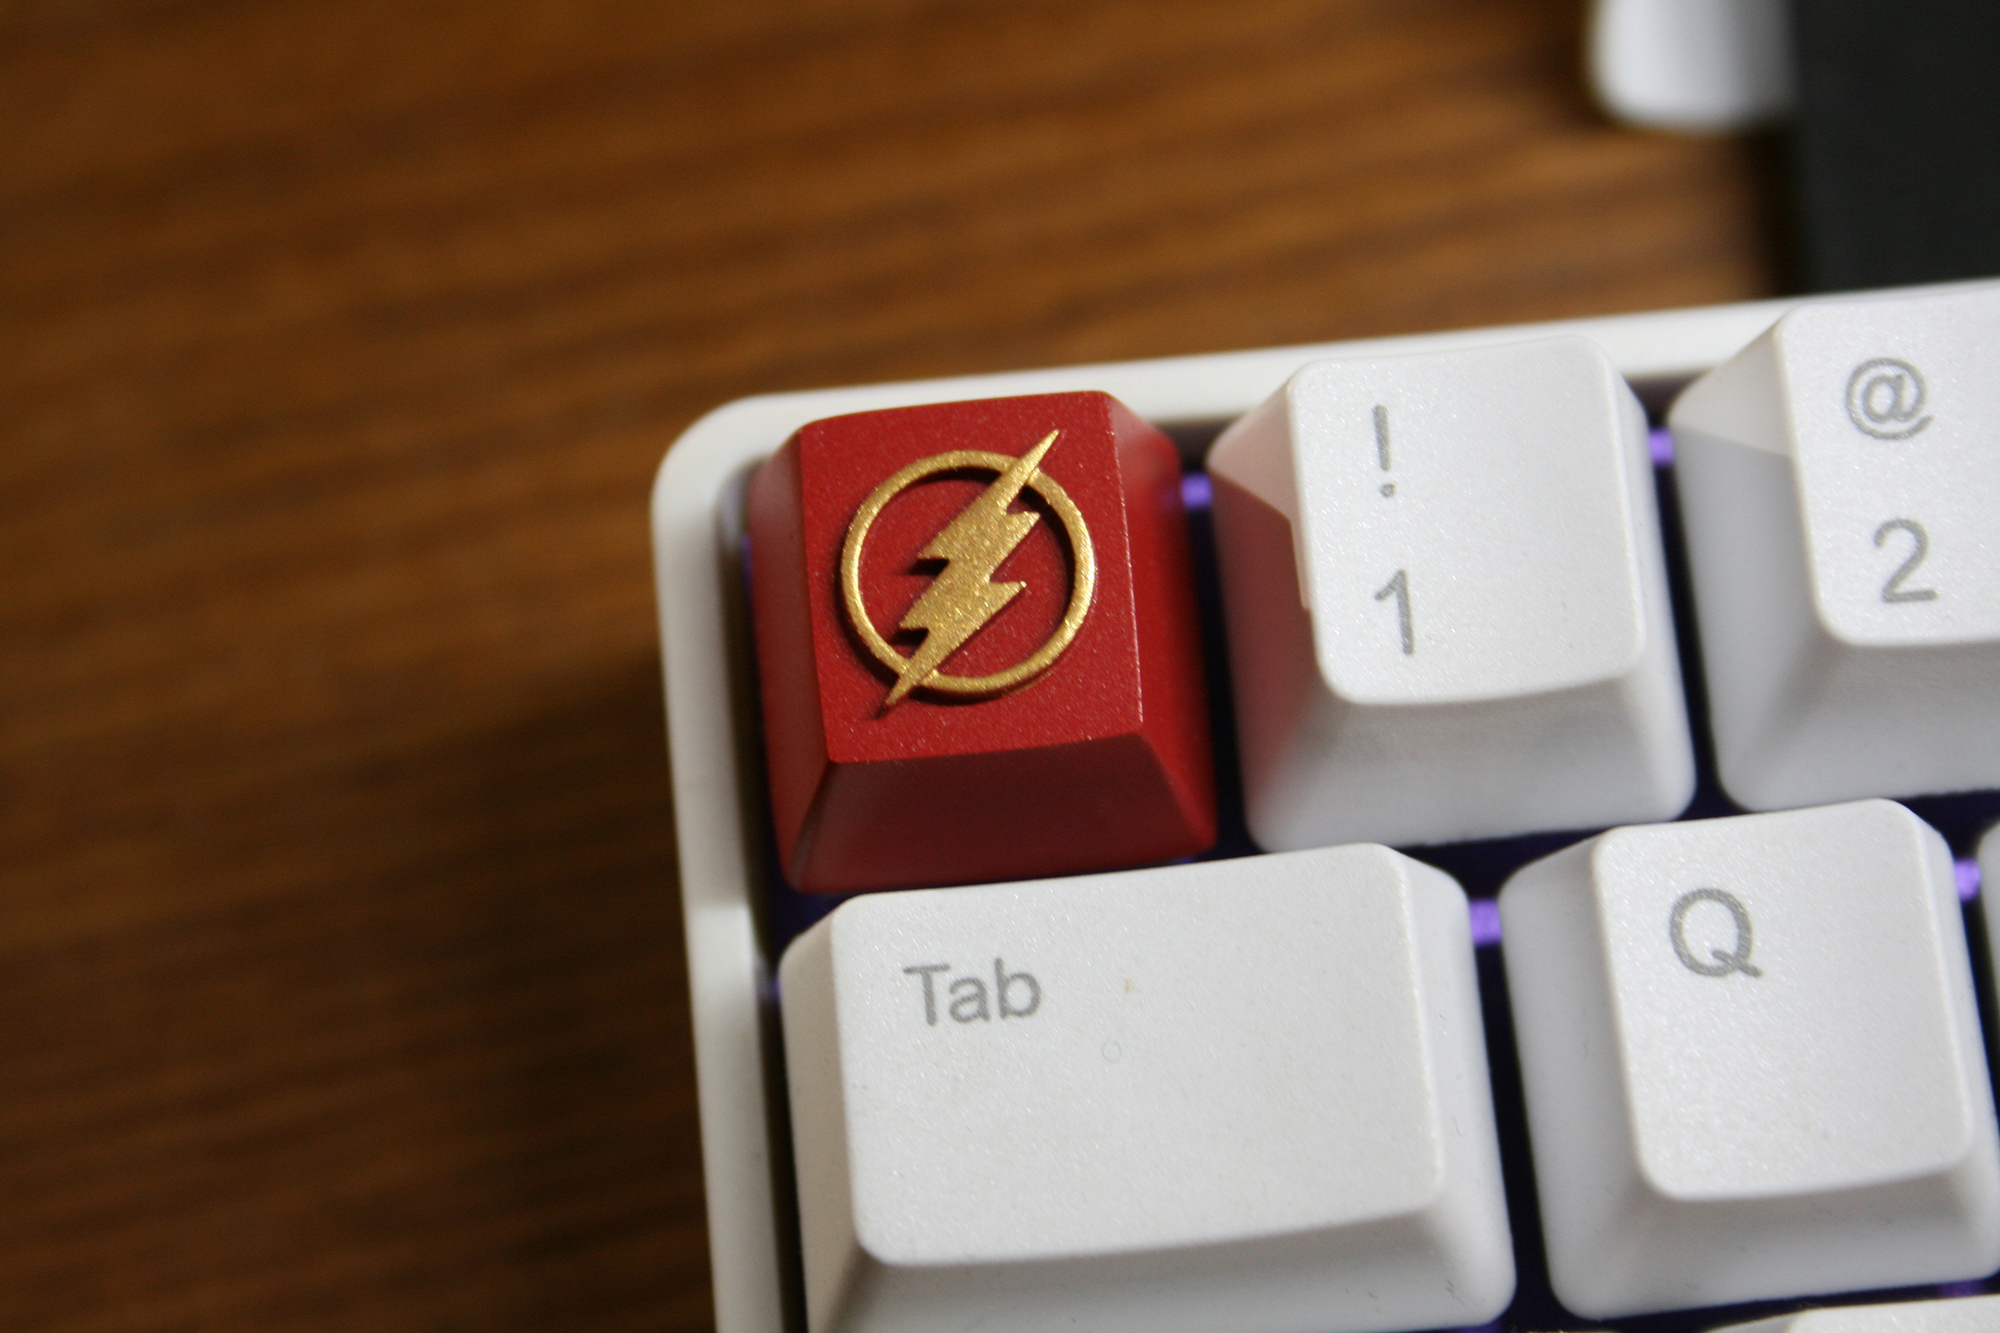 1pc Resin Hand-made Customized Key Cap 3D Stereoscopic Mechanical Keyboard Keycap For DC Superhero The Flash